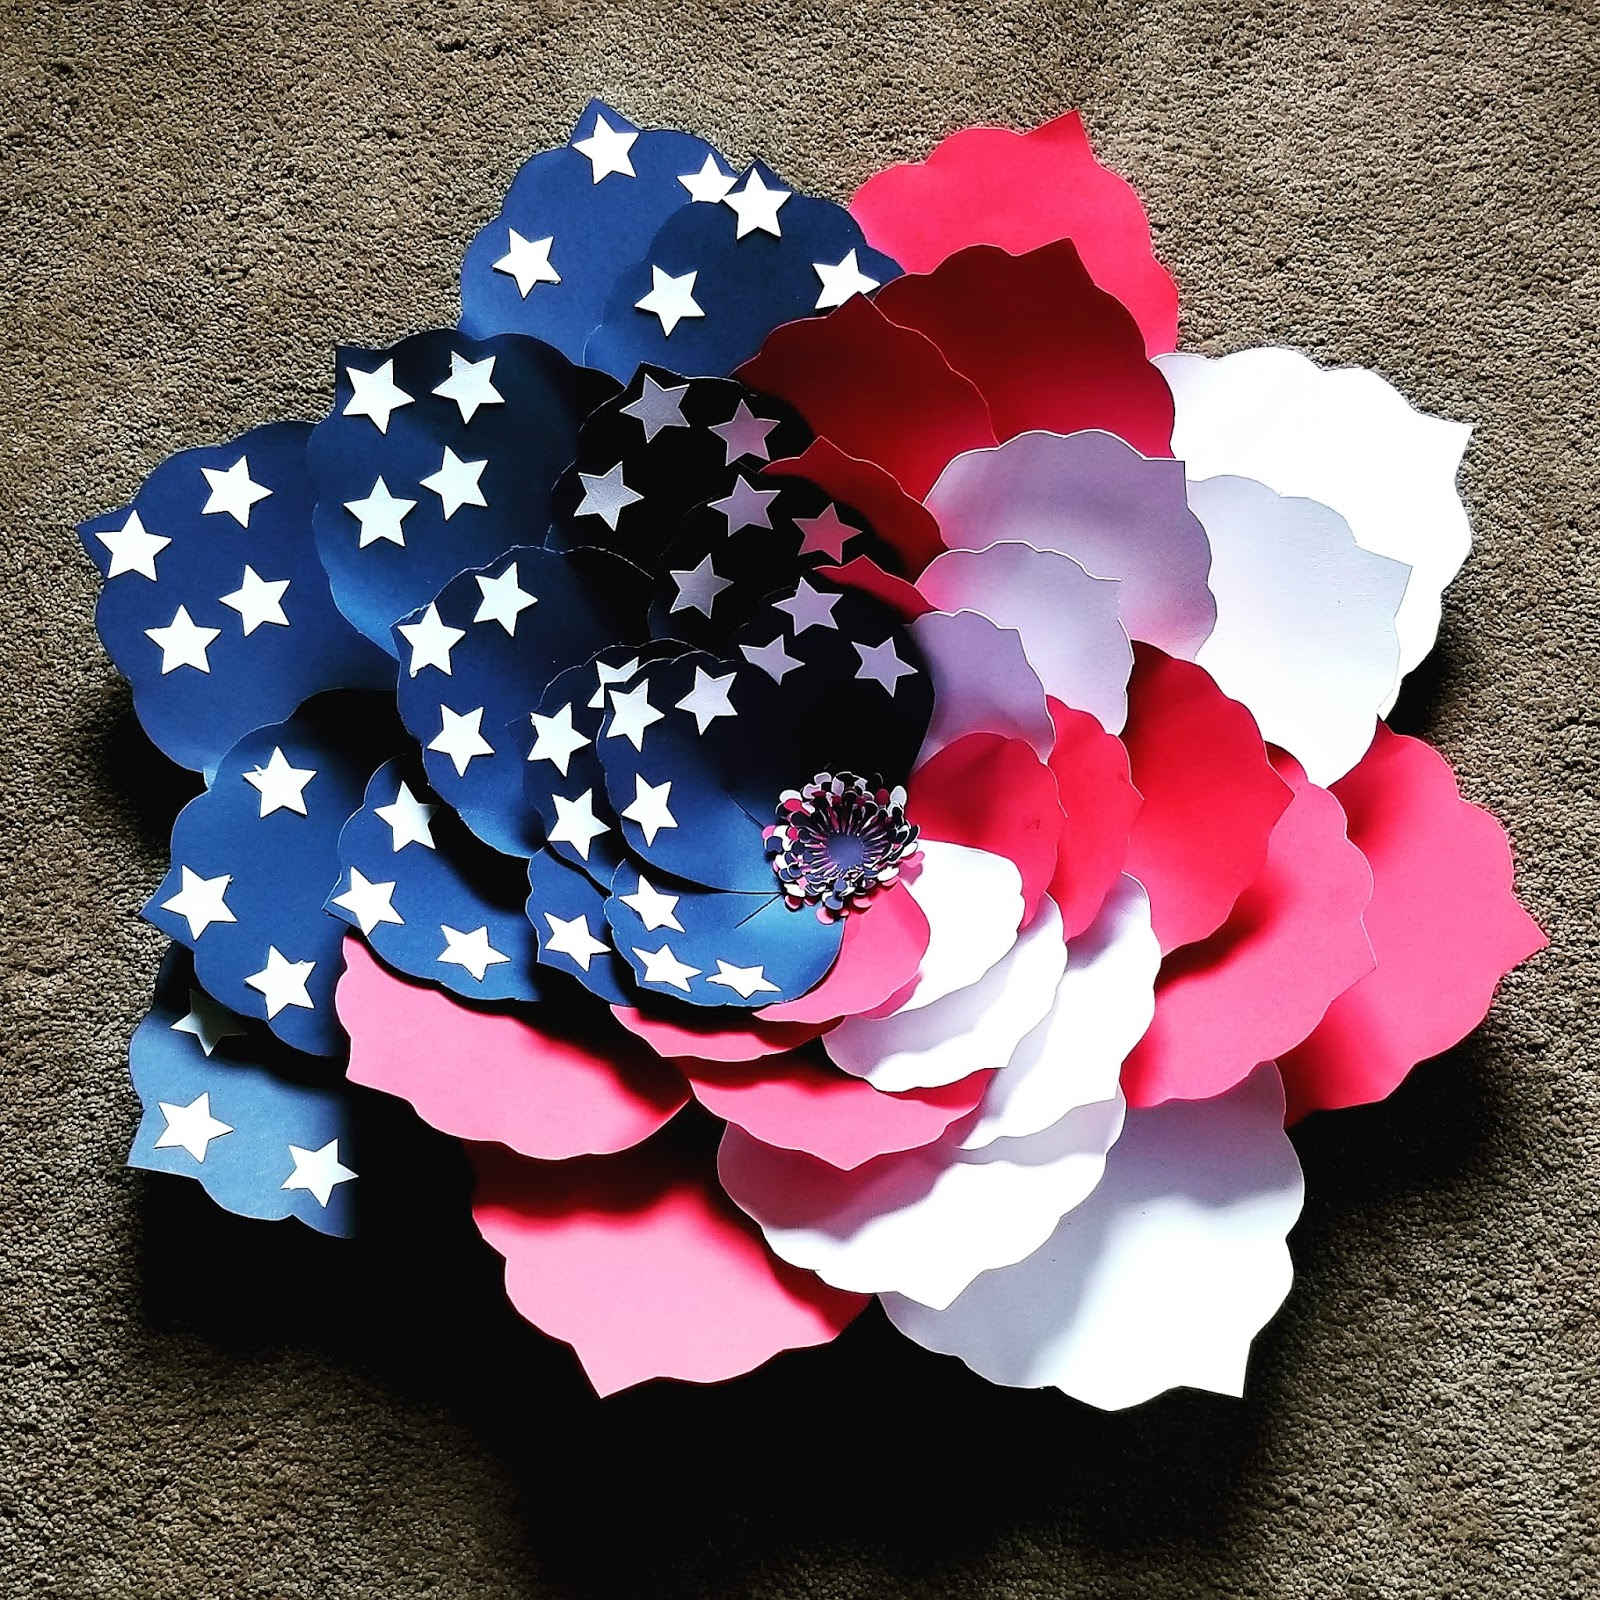 Patriotic american flag paper flower step by step with templates i decided awhile ago that making paper flowers is just not my thing and then i saw someone post an american flag flower and i just had to try one more mightylinksfo